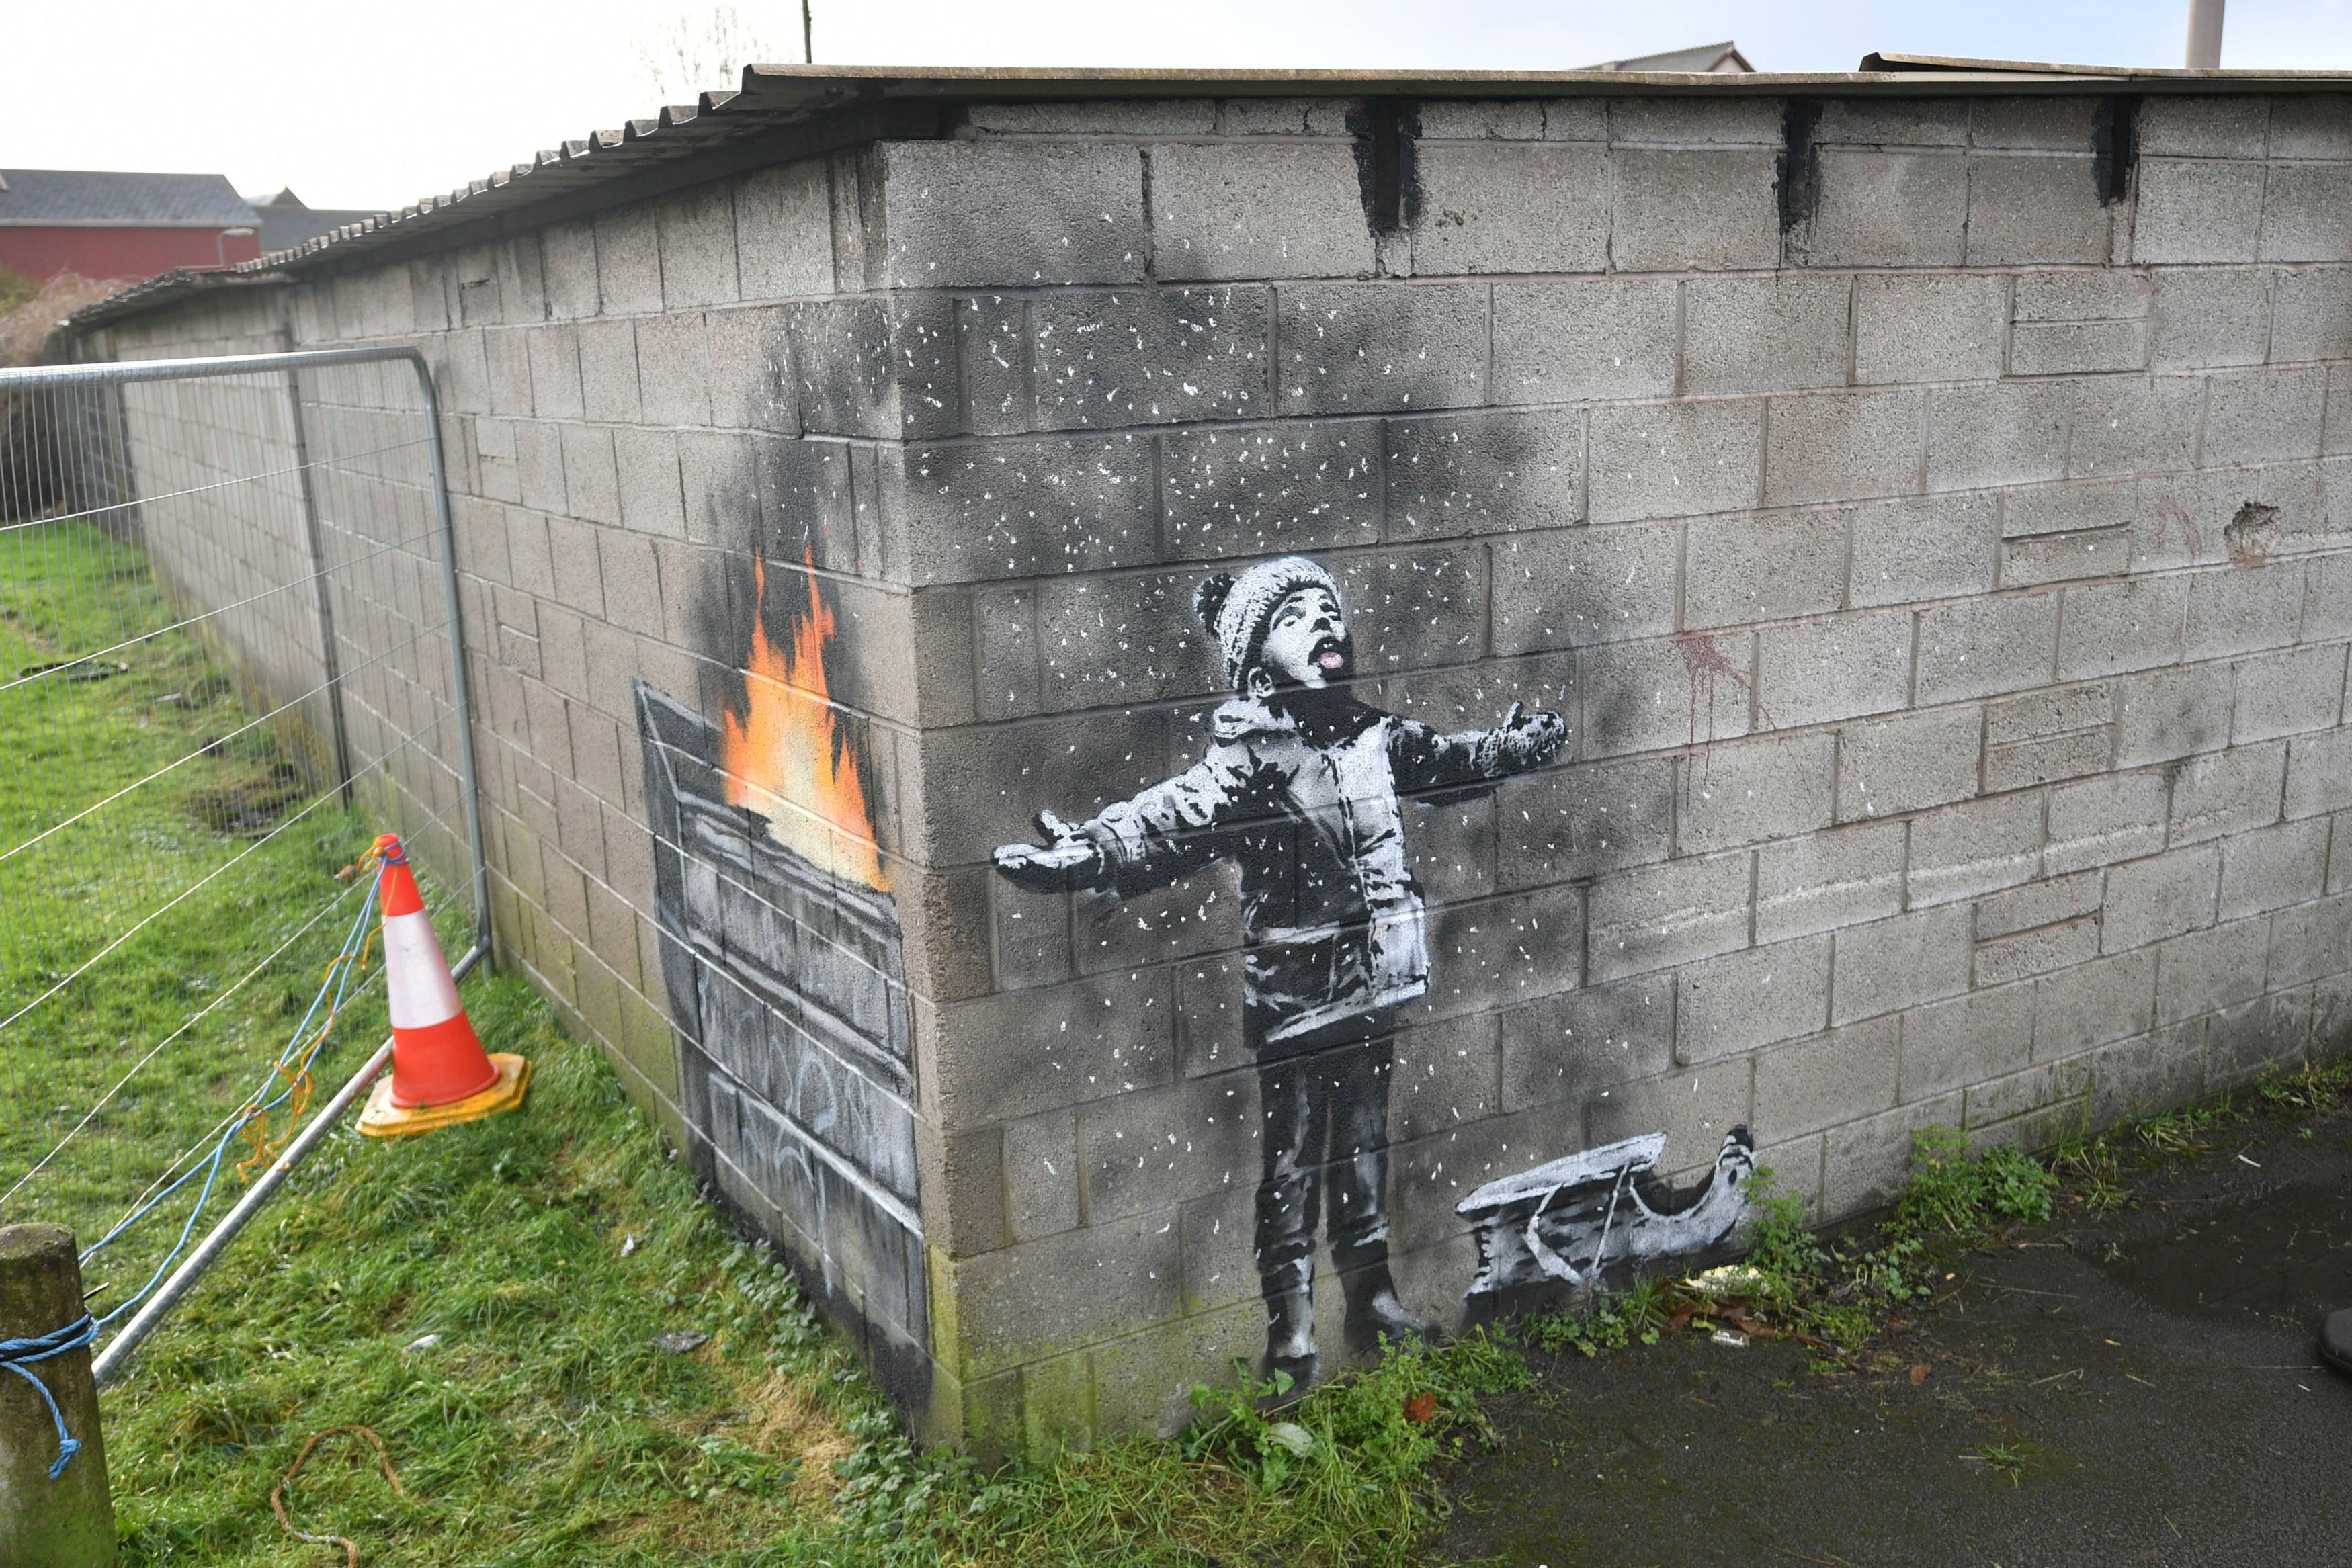 Locals in Port Talbot, Wales, first spotted the mural on Tuesday.